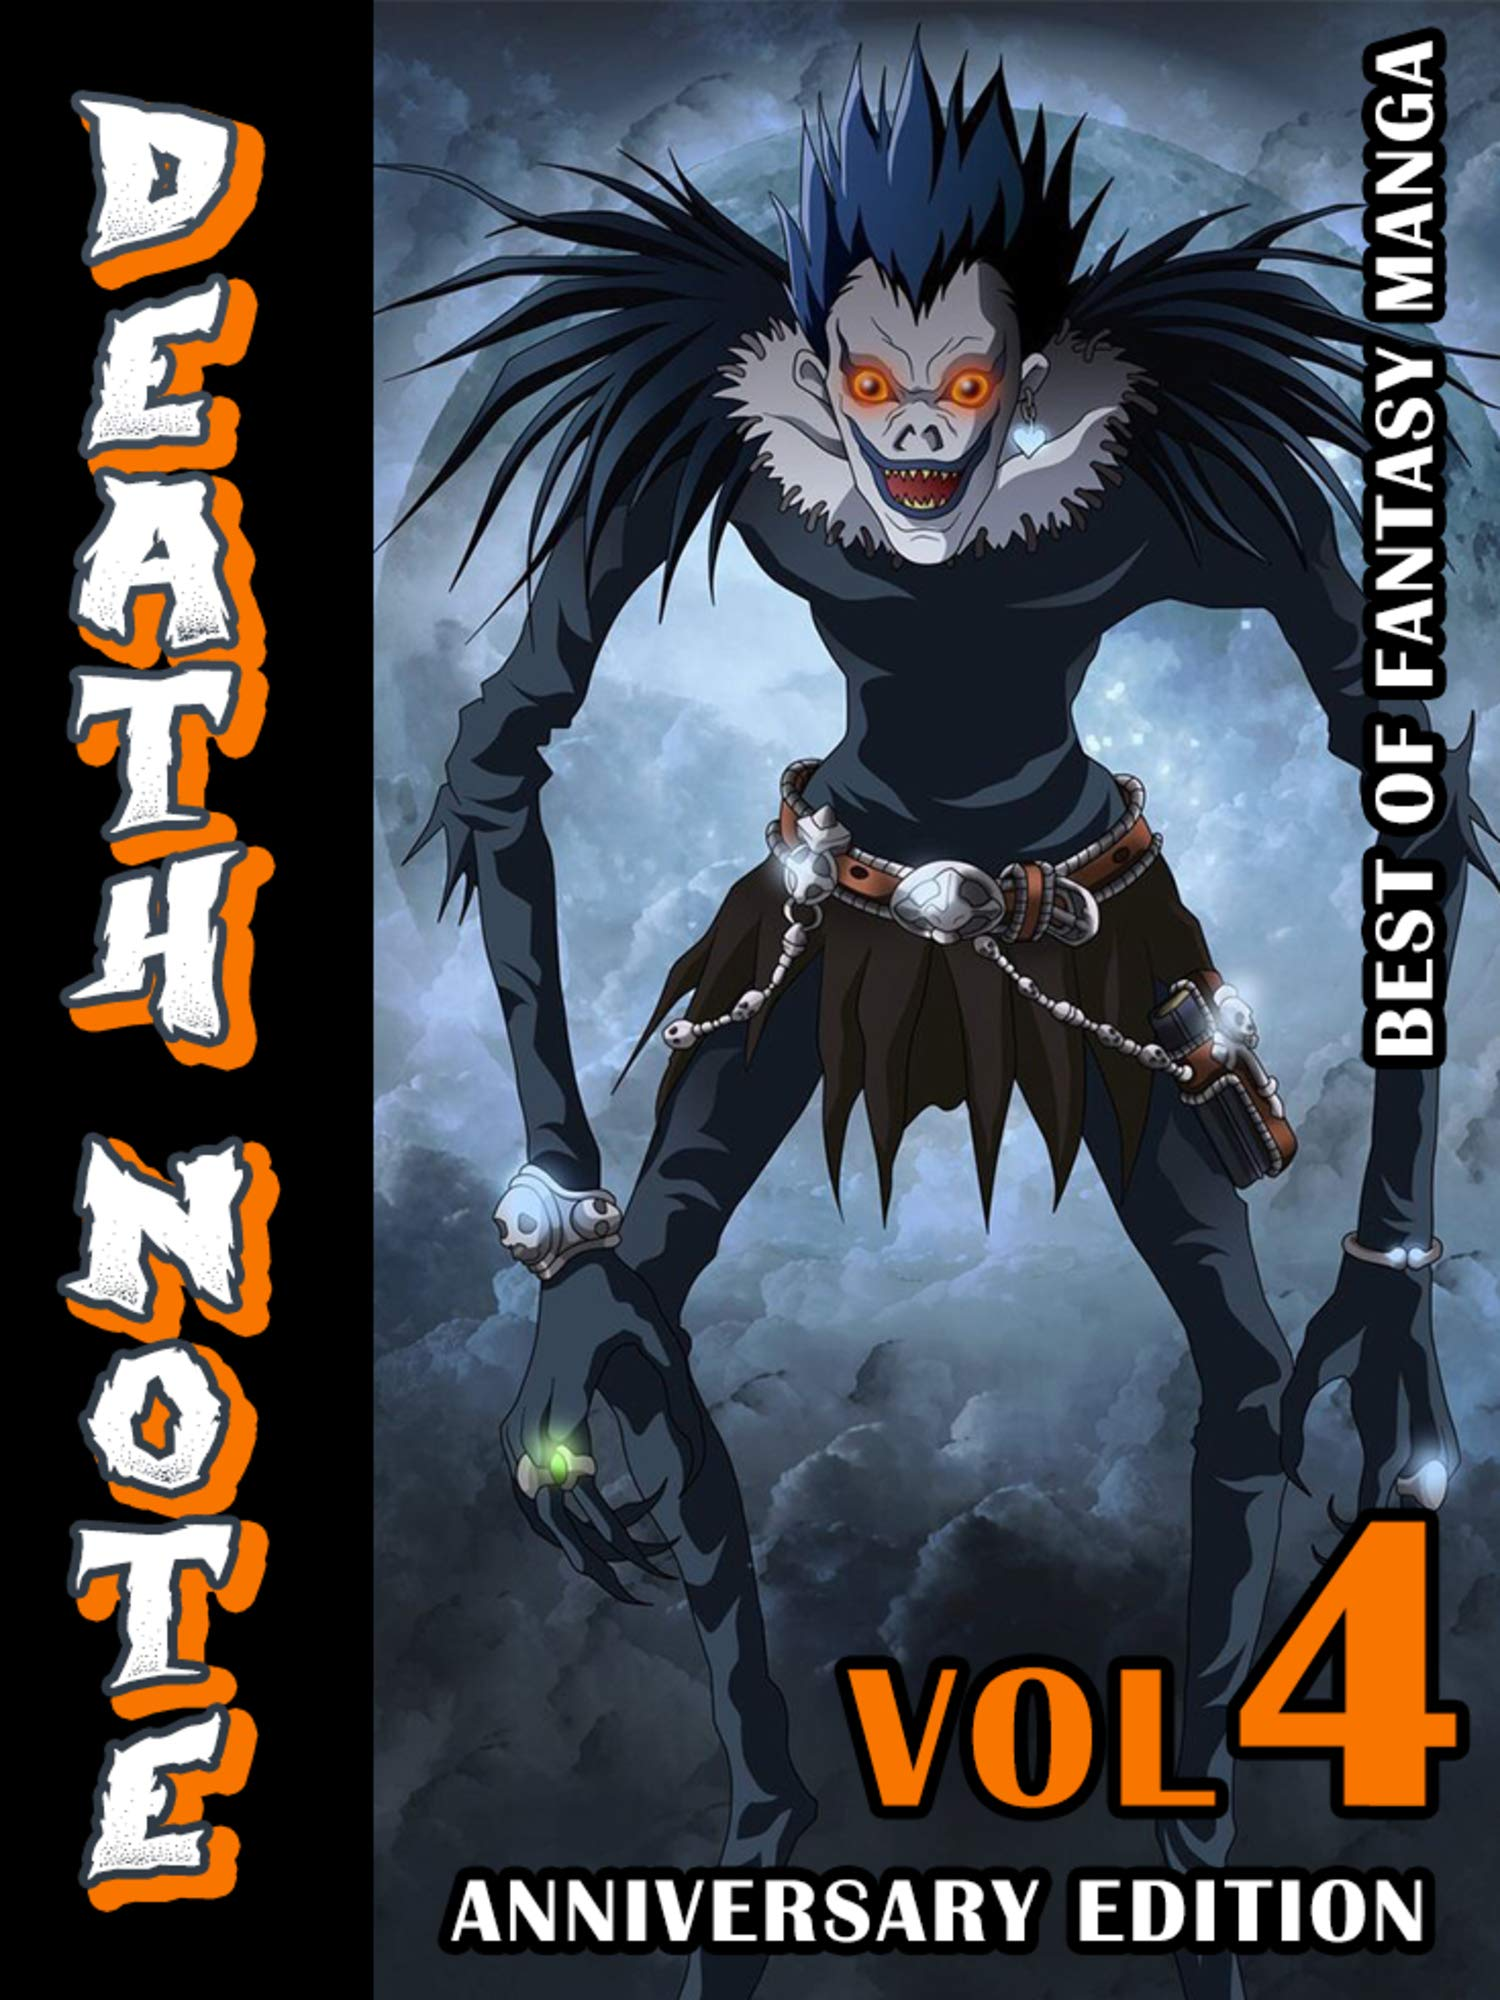 Best of Fantasy Manga Death Note Anniversary Edition: Limited Edition Death Note Volume 4